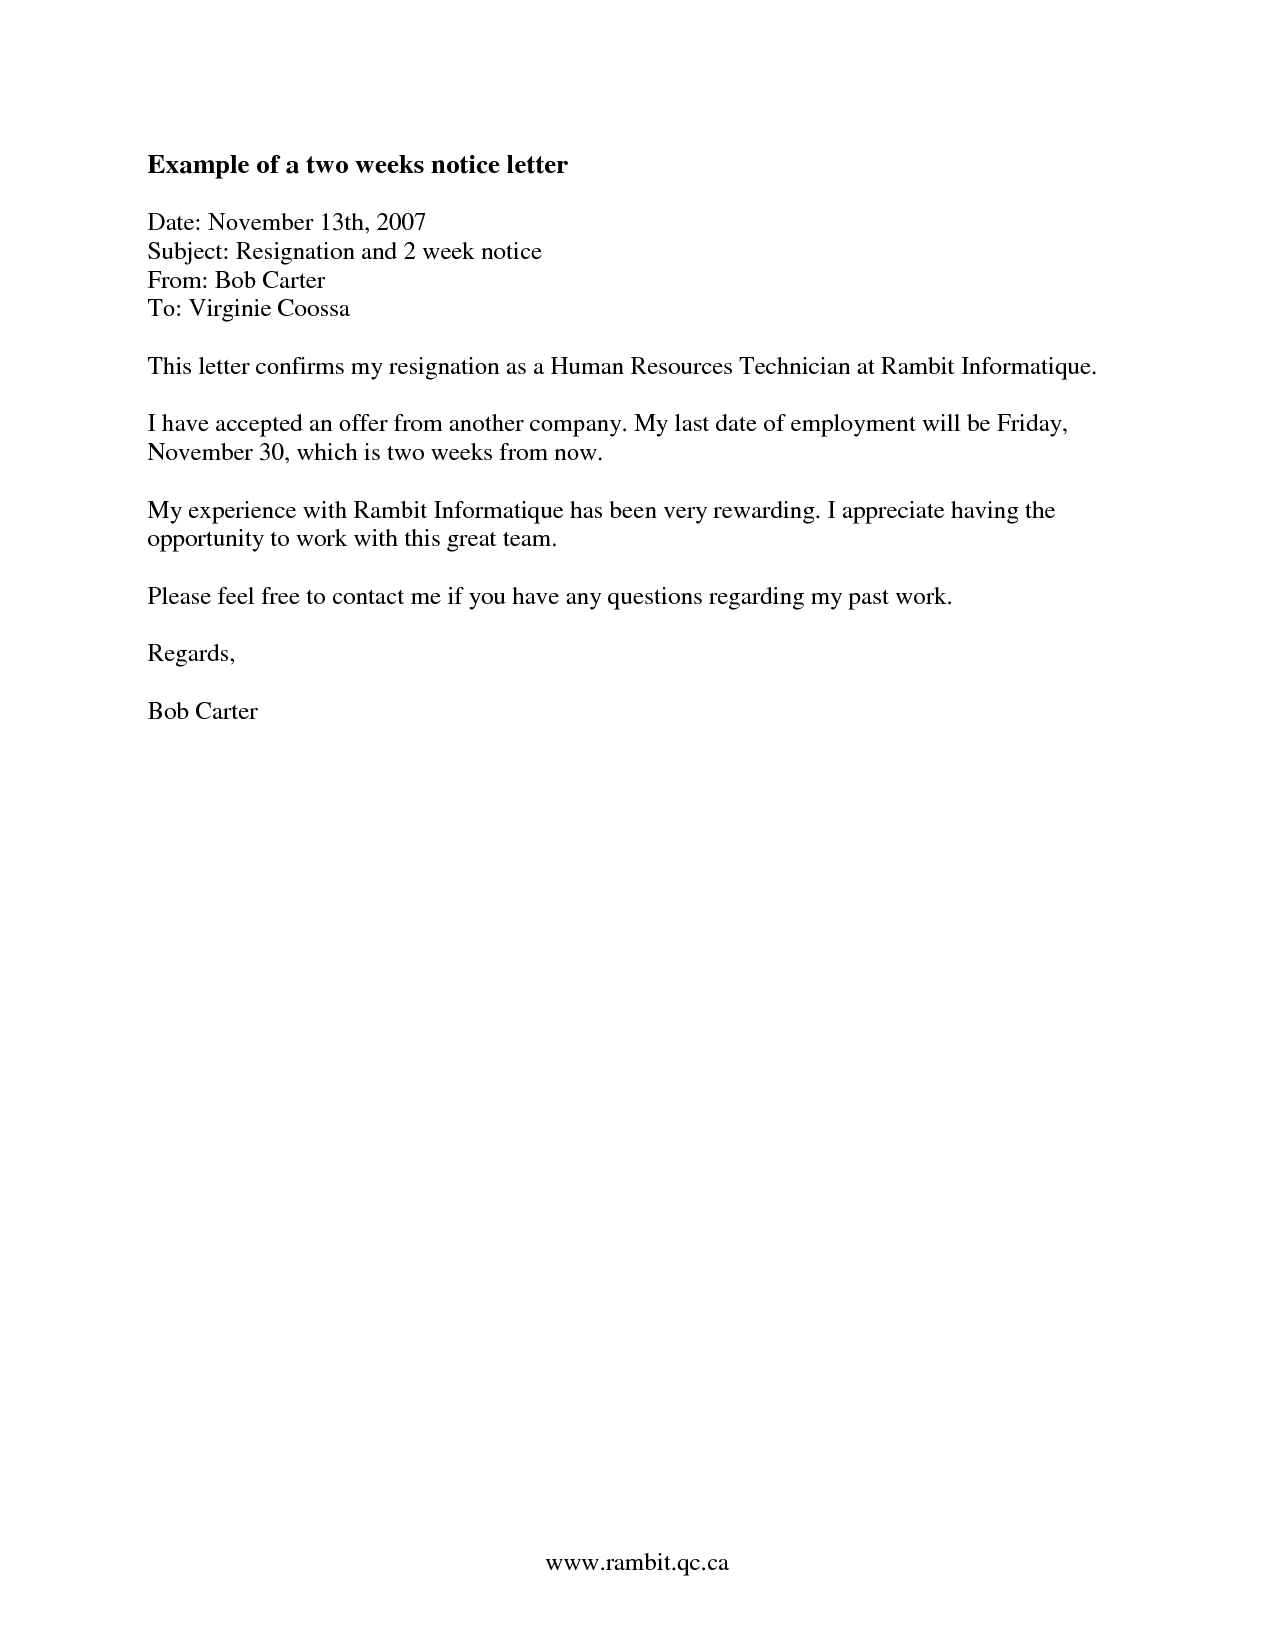 2 Week Notice Letter Template - How to Find Examples Of Two Week Notice Recipes